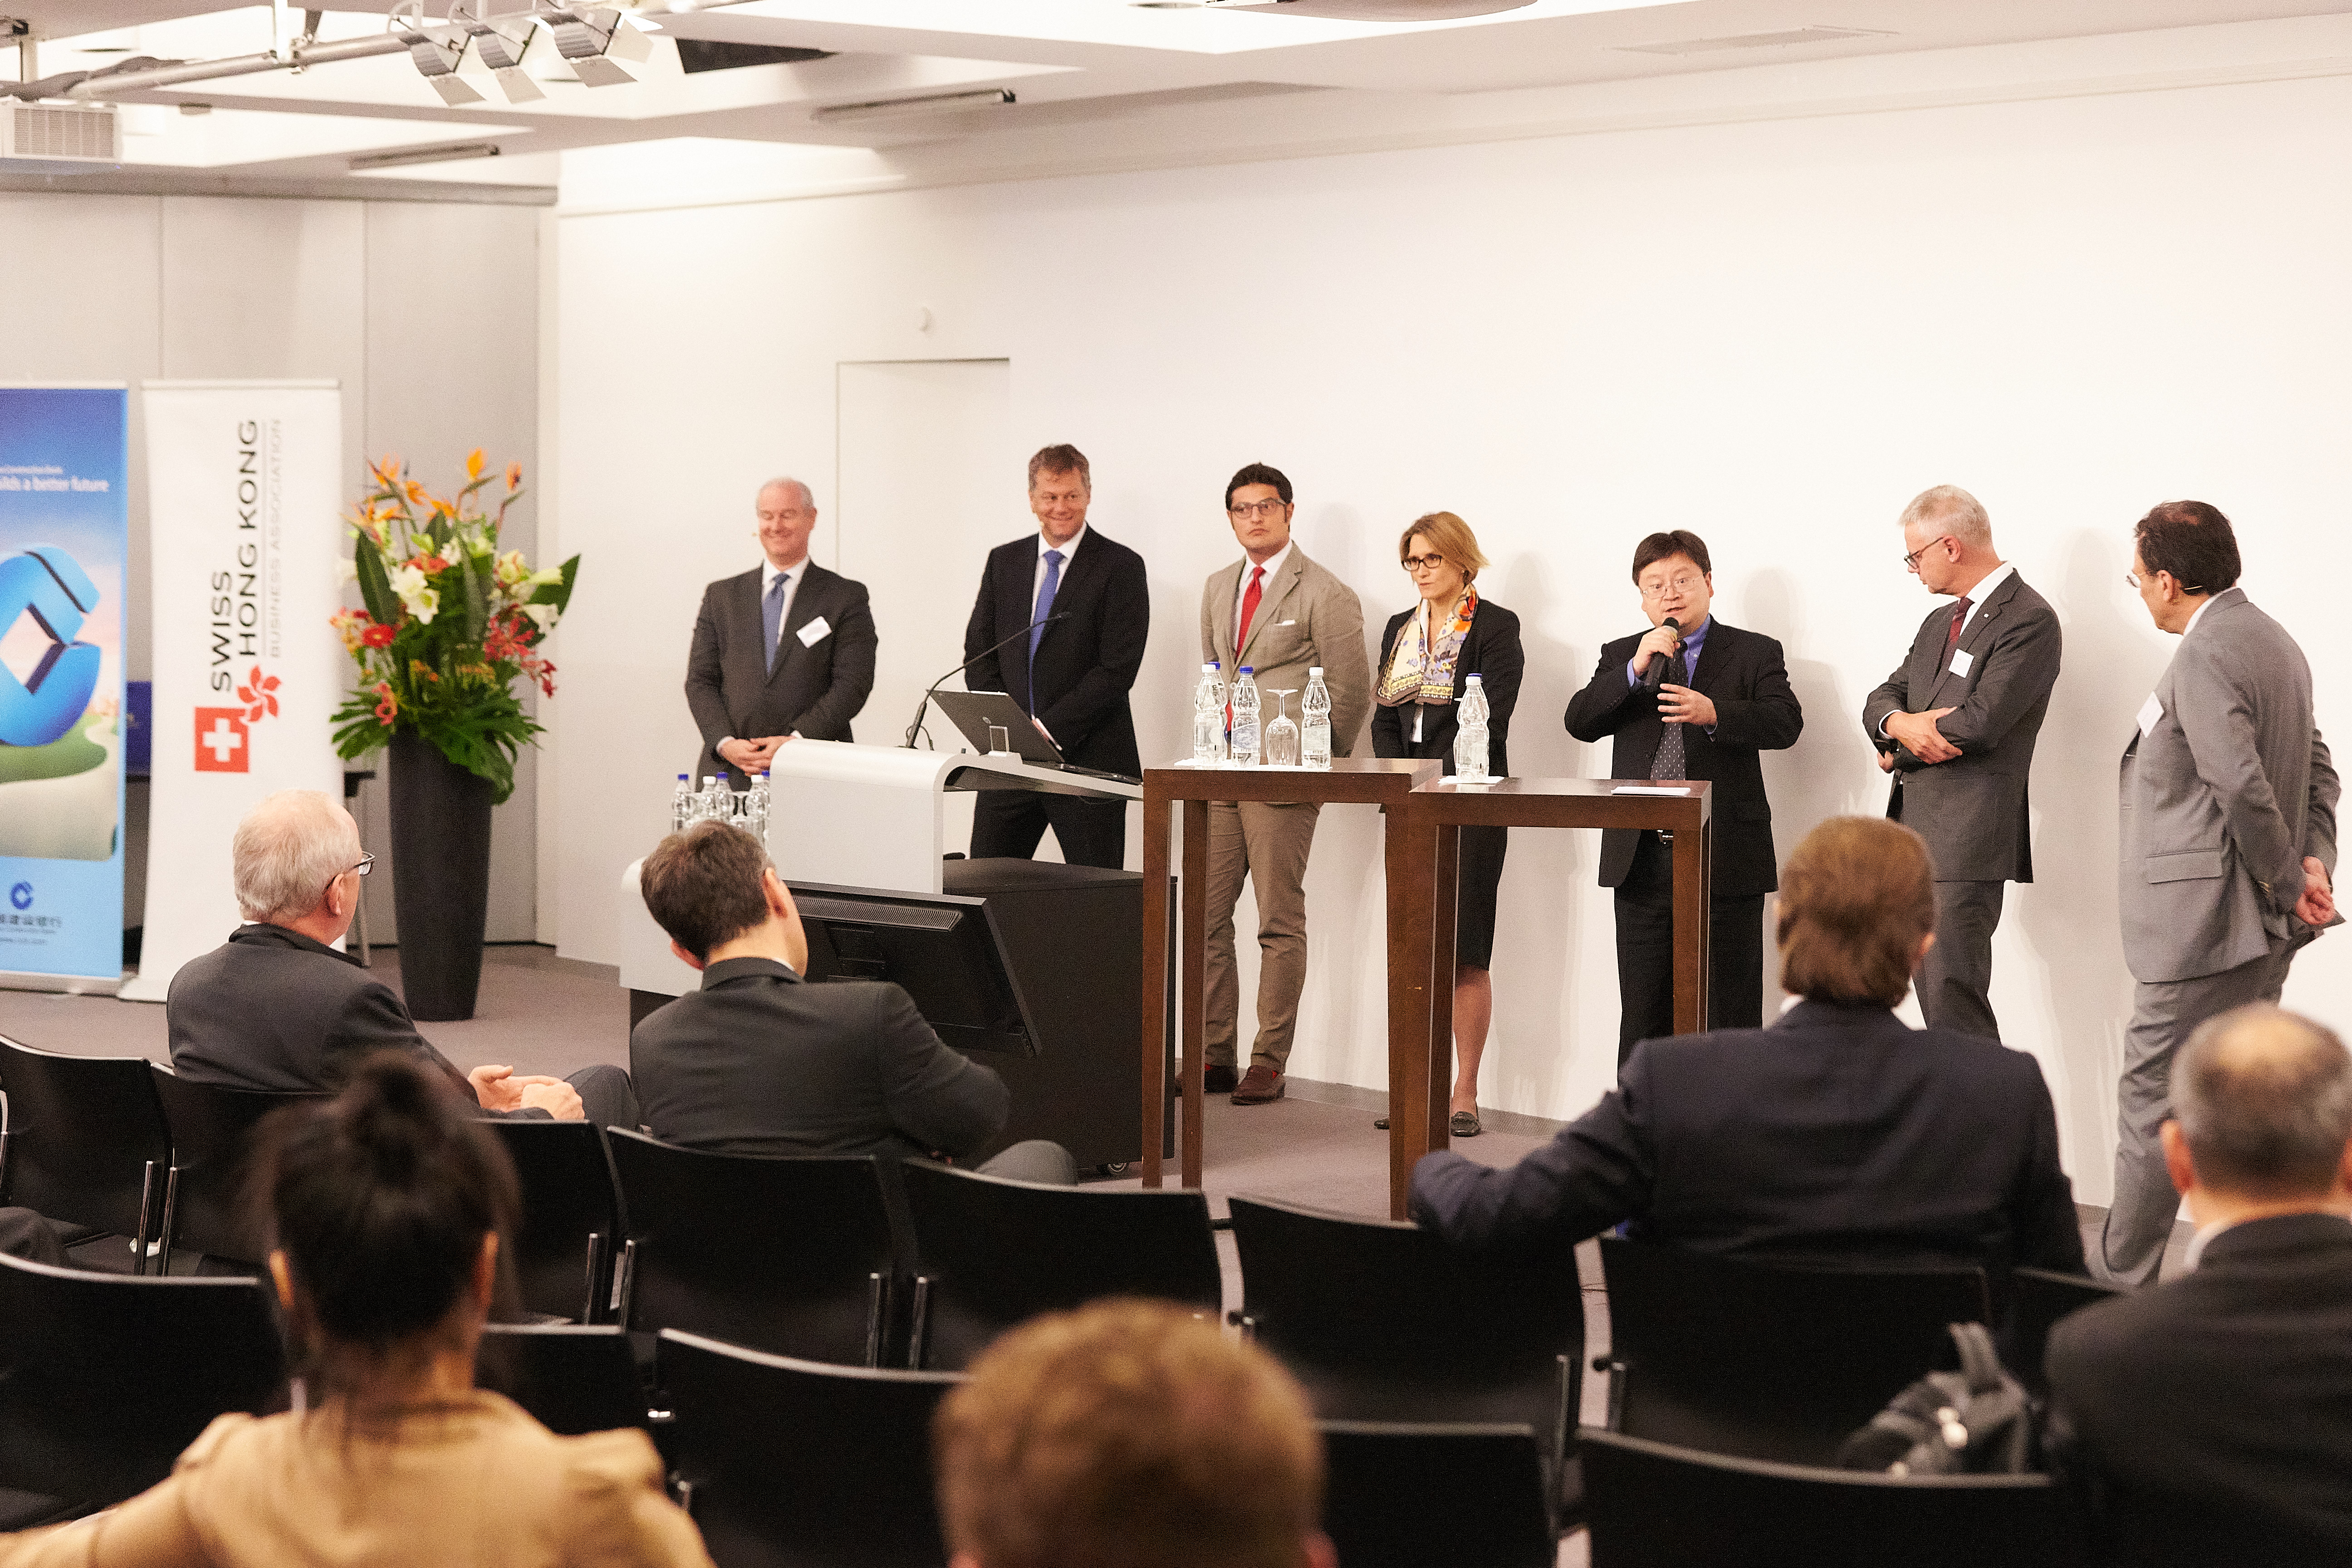 RMB Internationalization – Road to 2020 is an Event of the Swiss-Chinese Chamber of Commerce www.sccc.ch  Foto: © 2017 by partners in GmbH · Stefan Weiss · www.partnersingmbh.ch